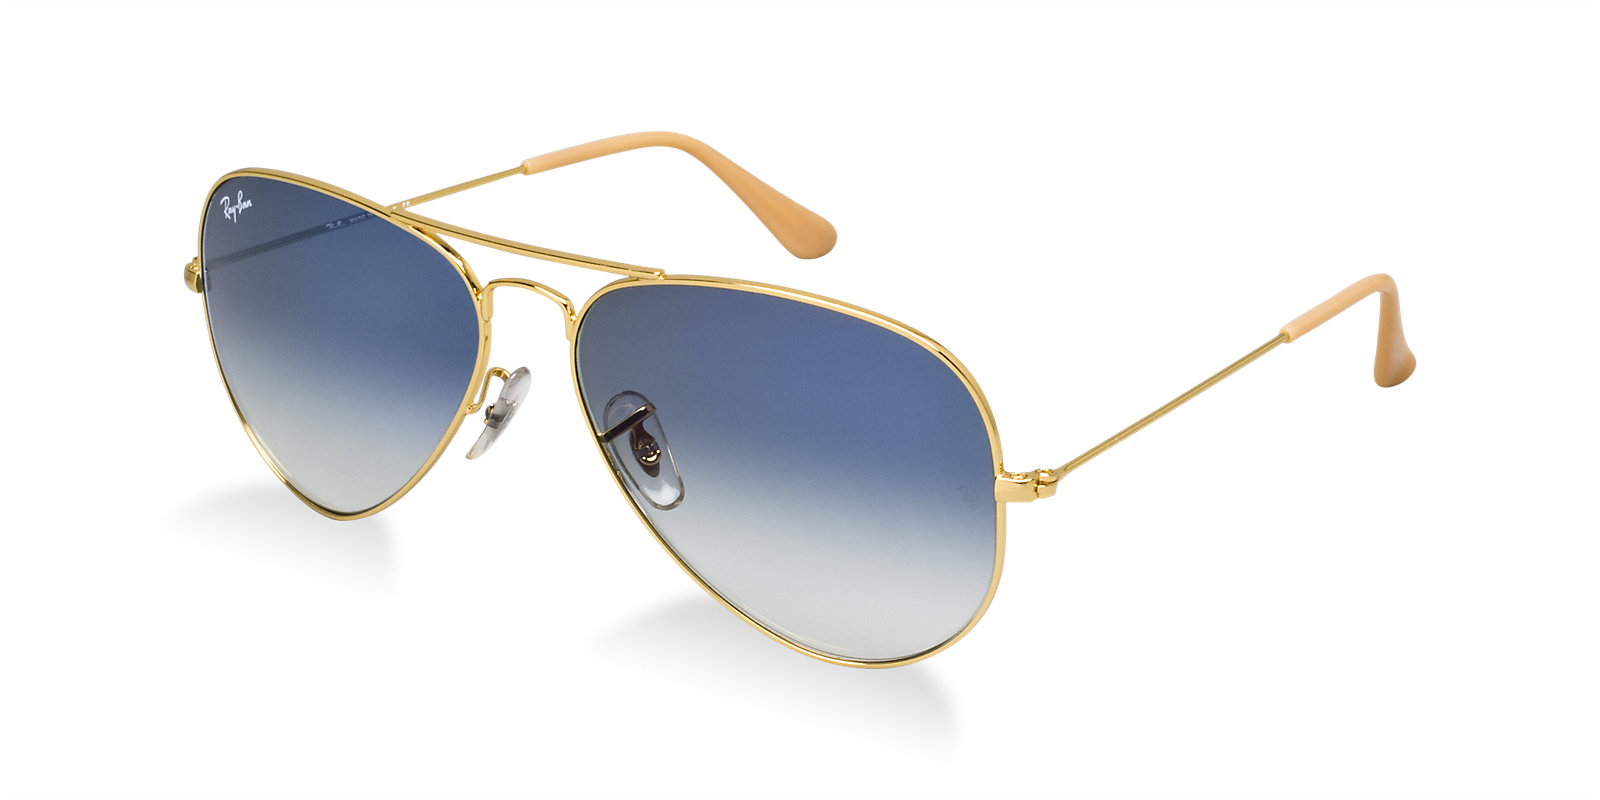 Okulary Ray Ban  3025 Aviator Large Metal Arista / Gradient Light Blue Orb3025-001/3F (1)